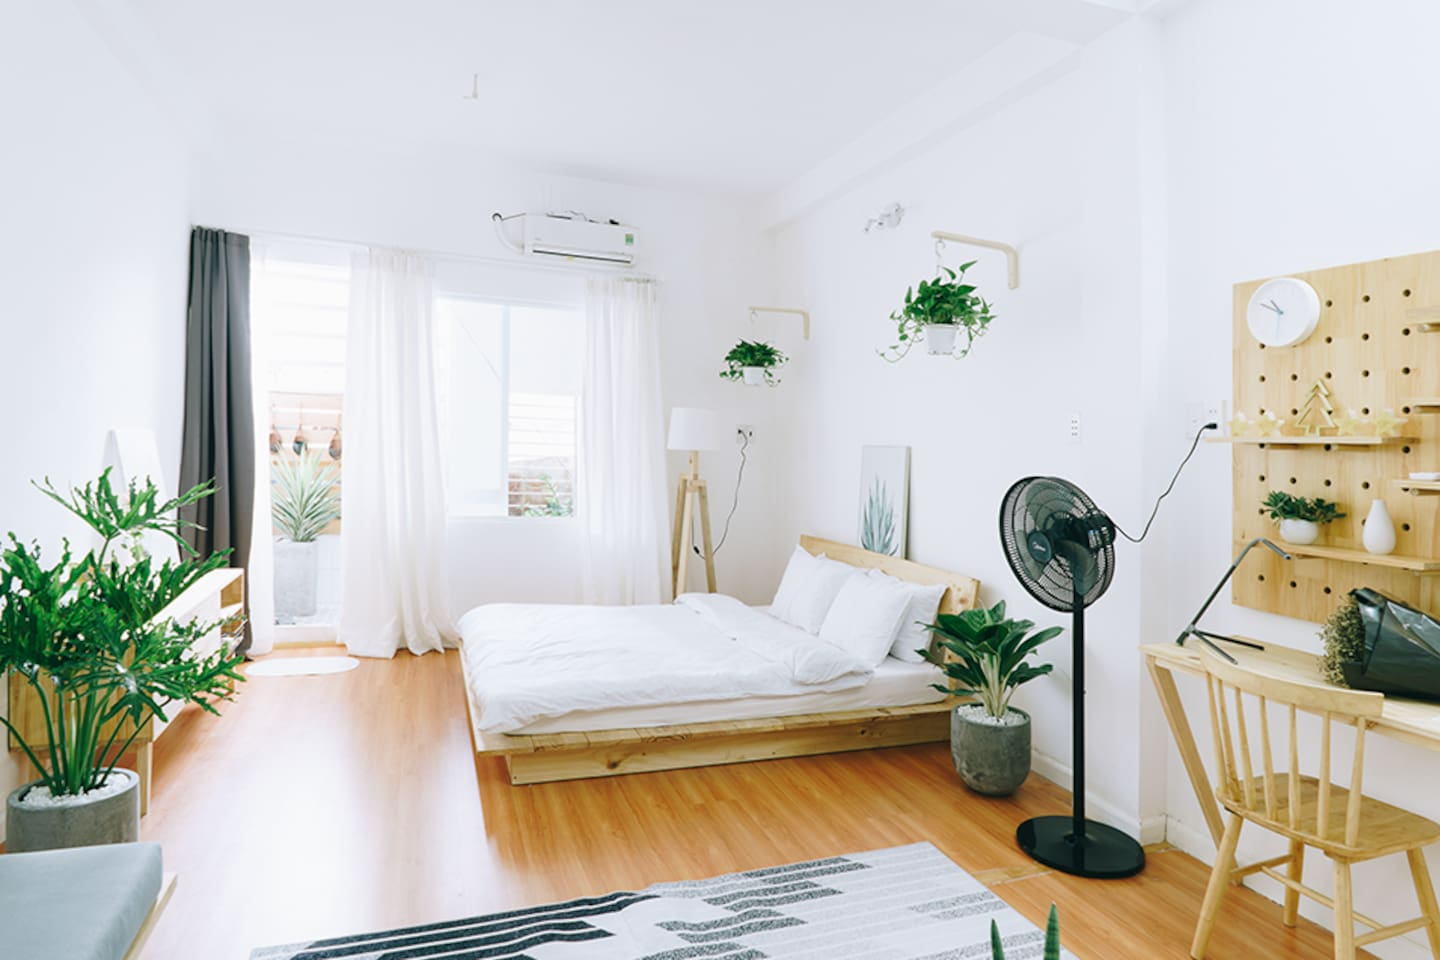 Welcome to B's Home No.3. The bright, sunny view of the apartment will make you relaxed